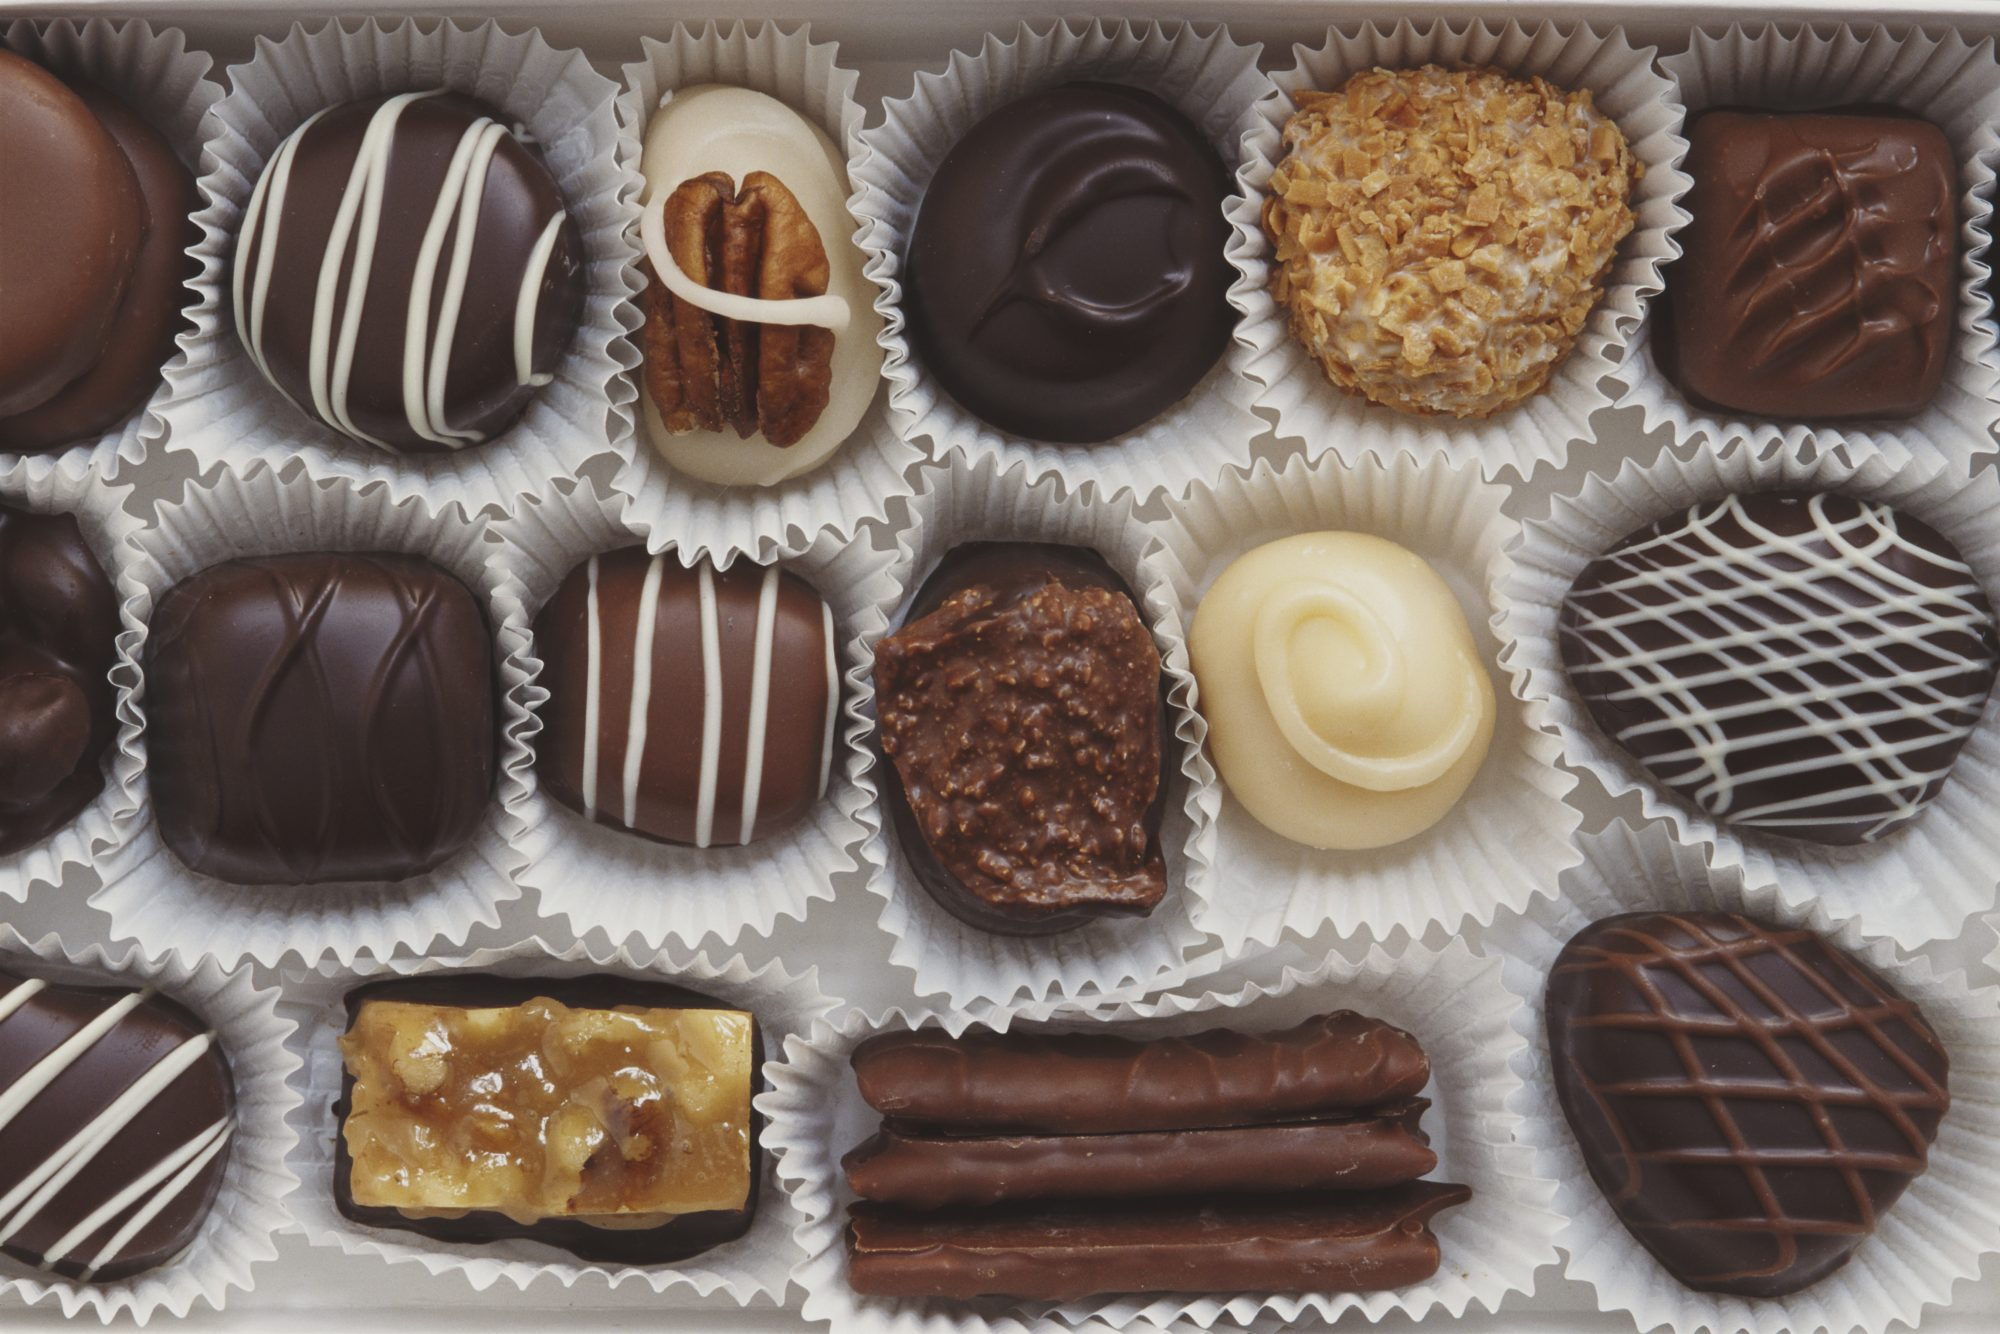 Box of assorted chocolate